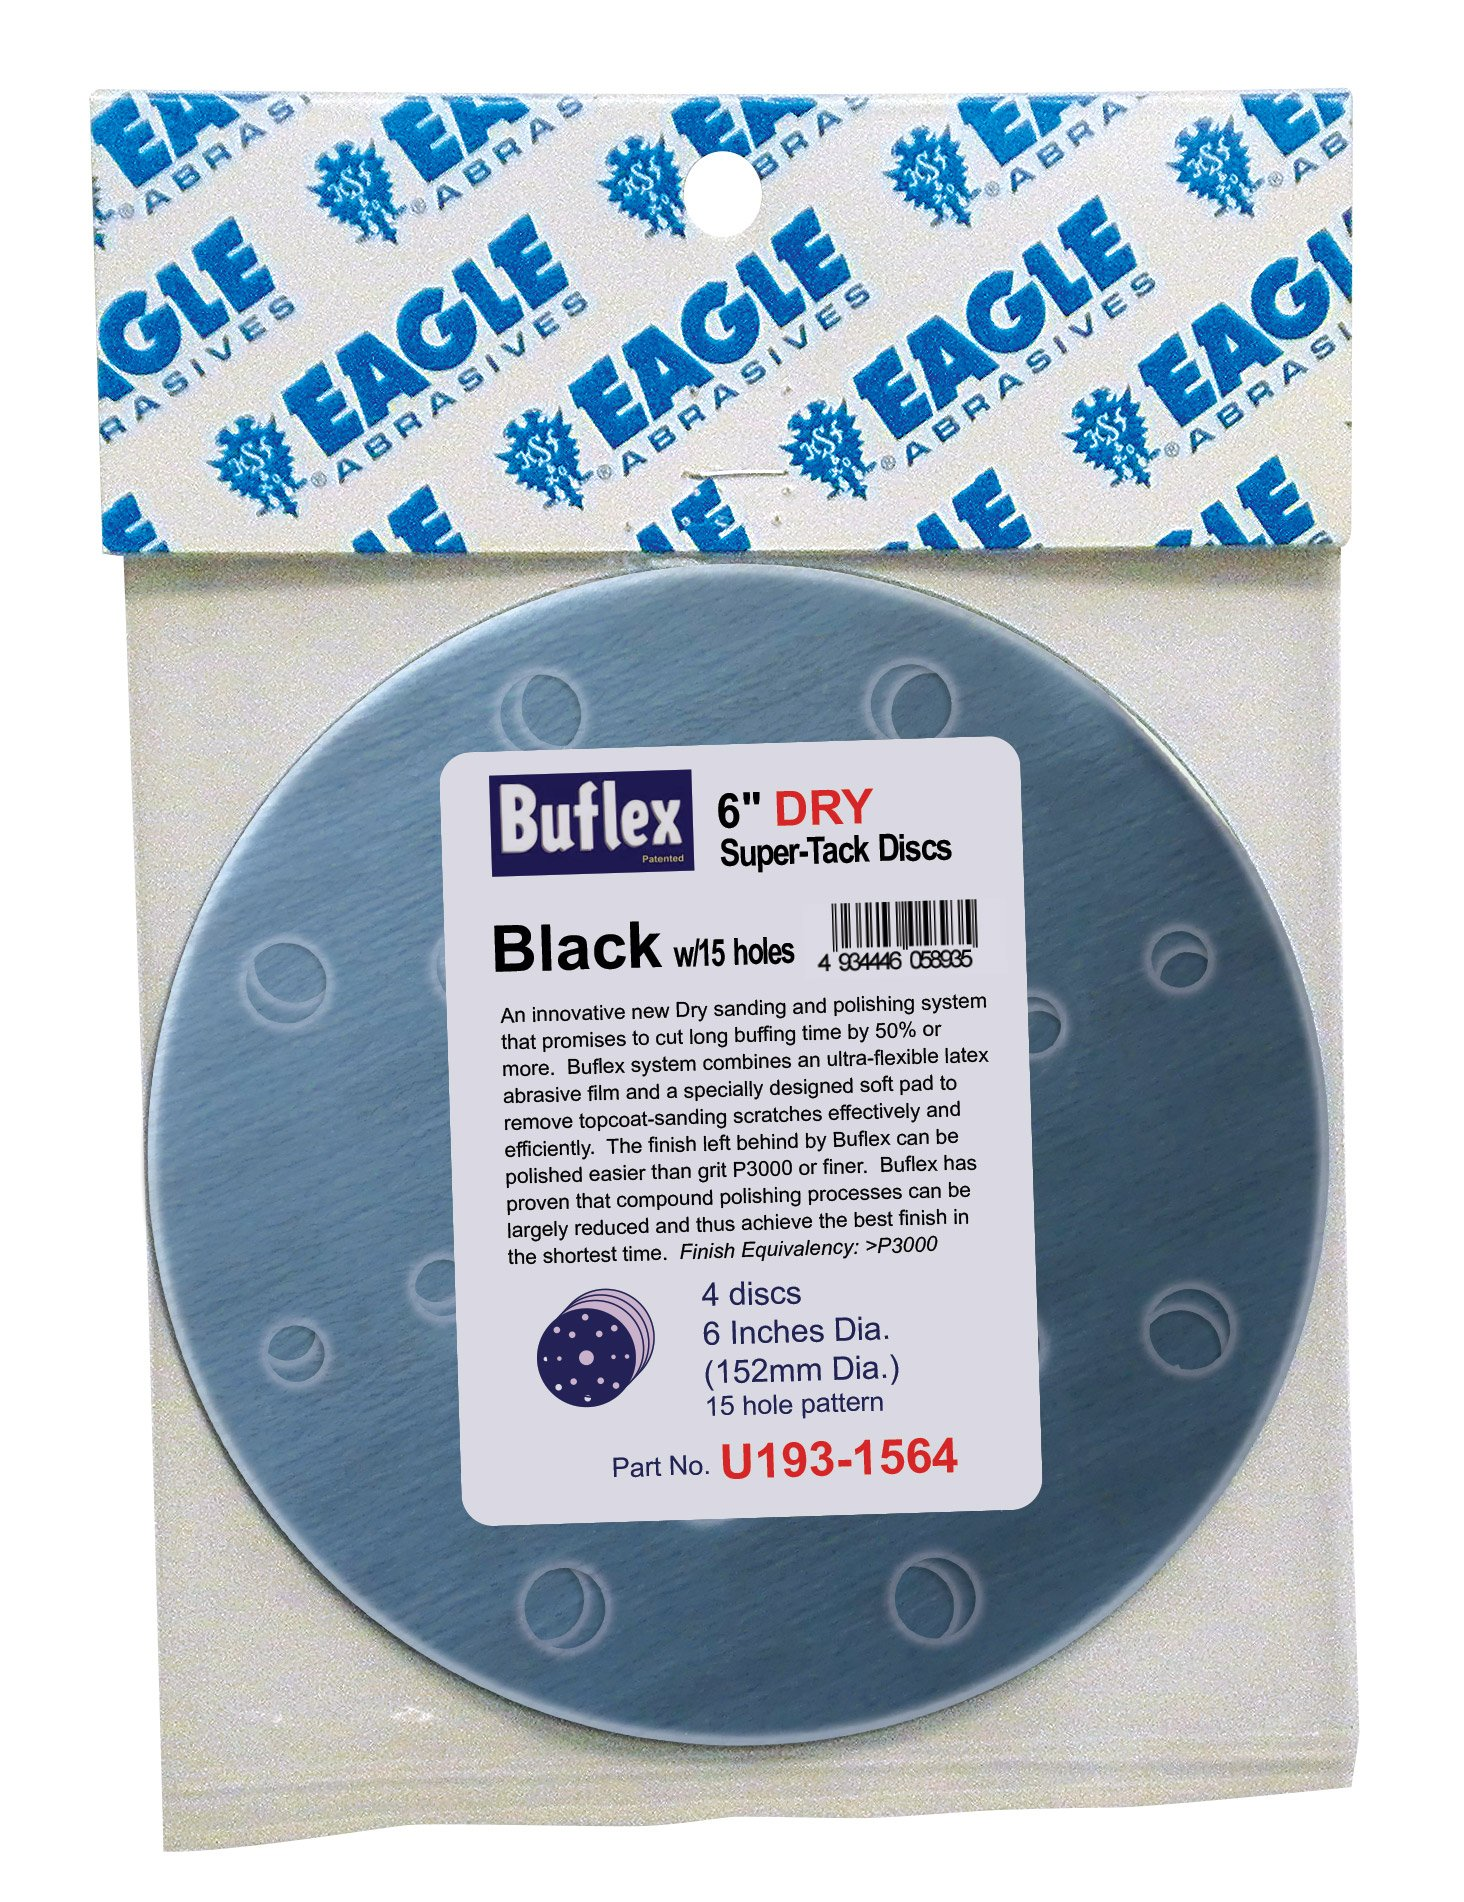 Eagle U193-1564 6 inch DRY Super Buflex Discs - 15 Holes - BLACK (K3000) - (Job-Pak) - 4 Discs/Pack